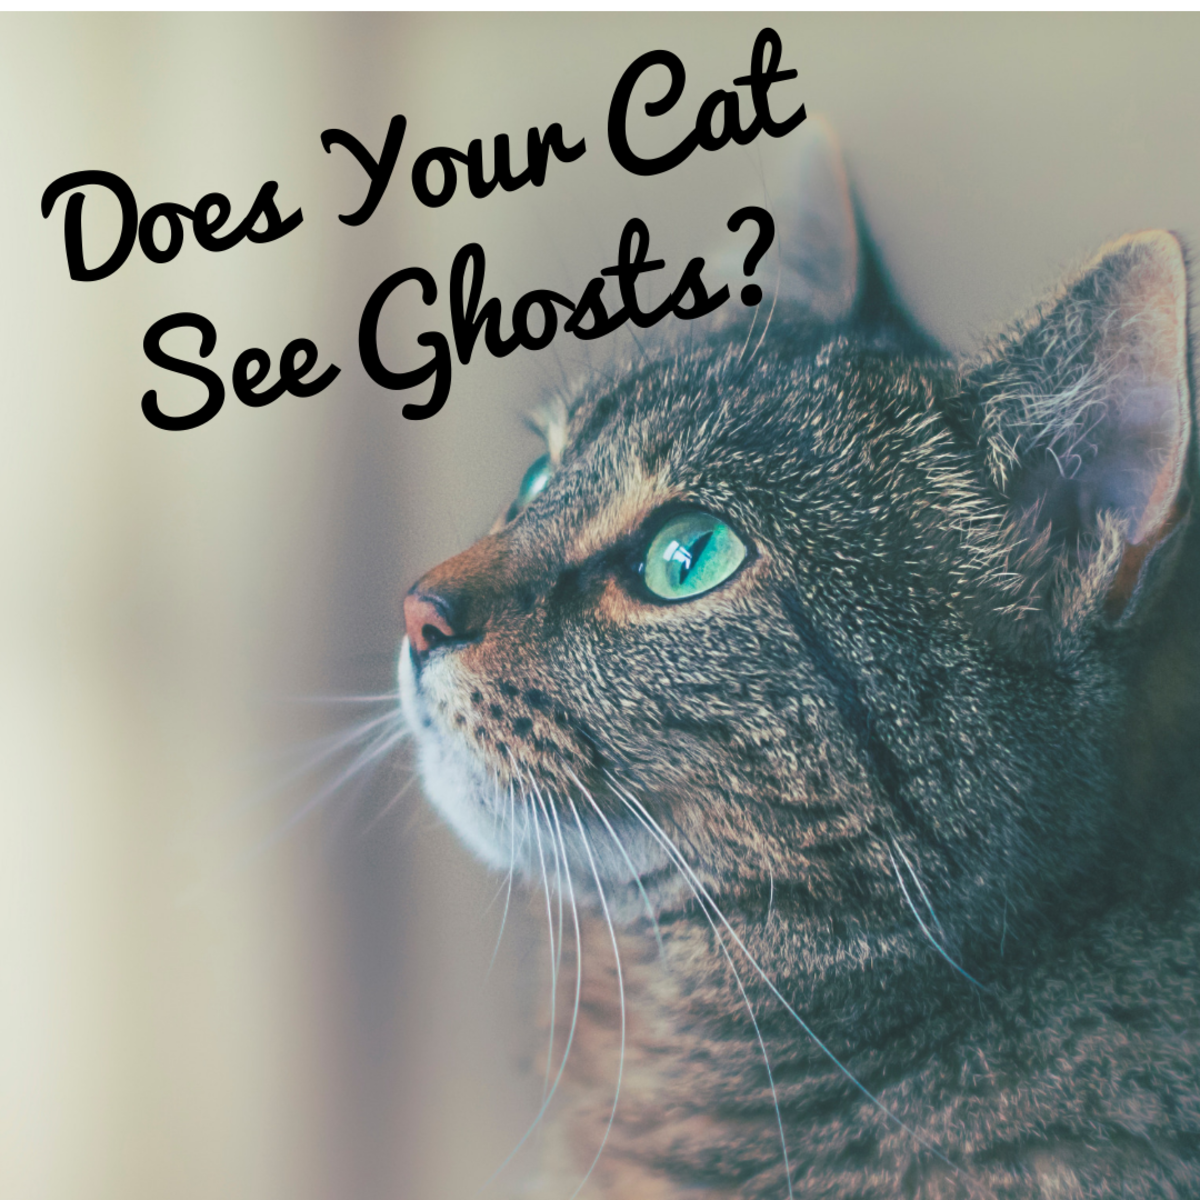 Do cats see ghosts?